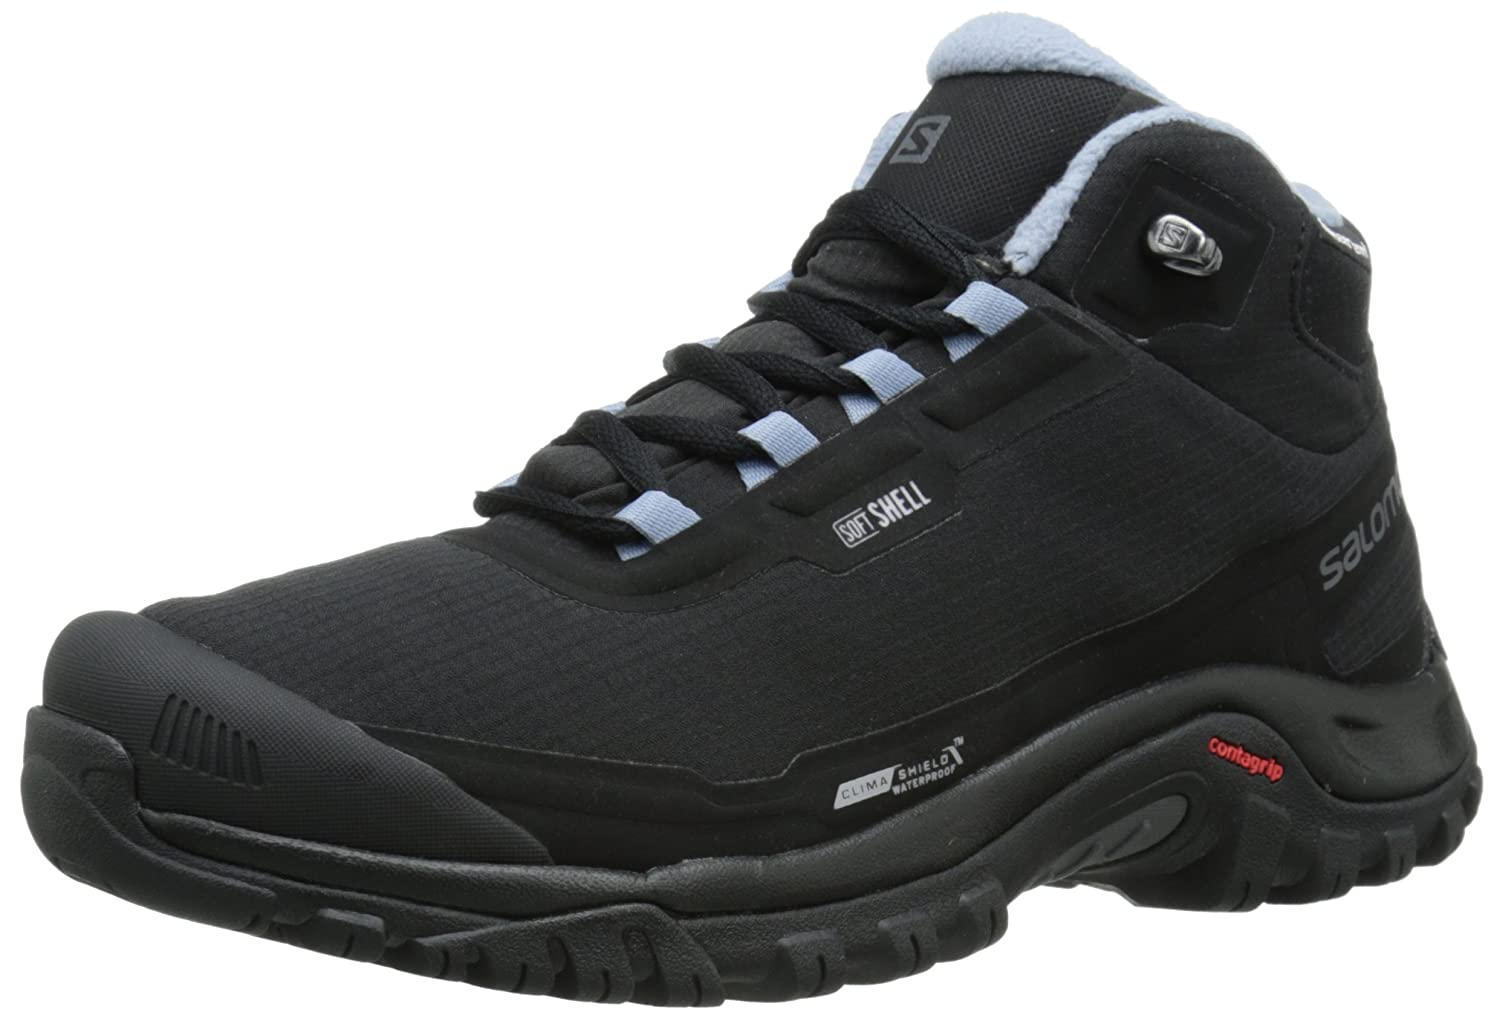 Salomon Women's Shelter CS Waterproof W Winter Performance Shoe B00PRNZR5S 9 B(M) US|Black/Black/Stone Blue